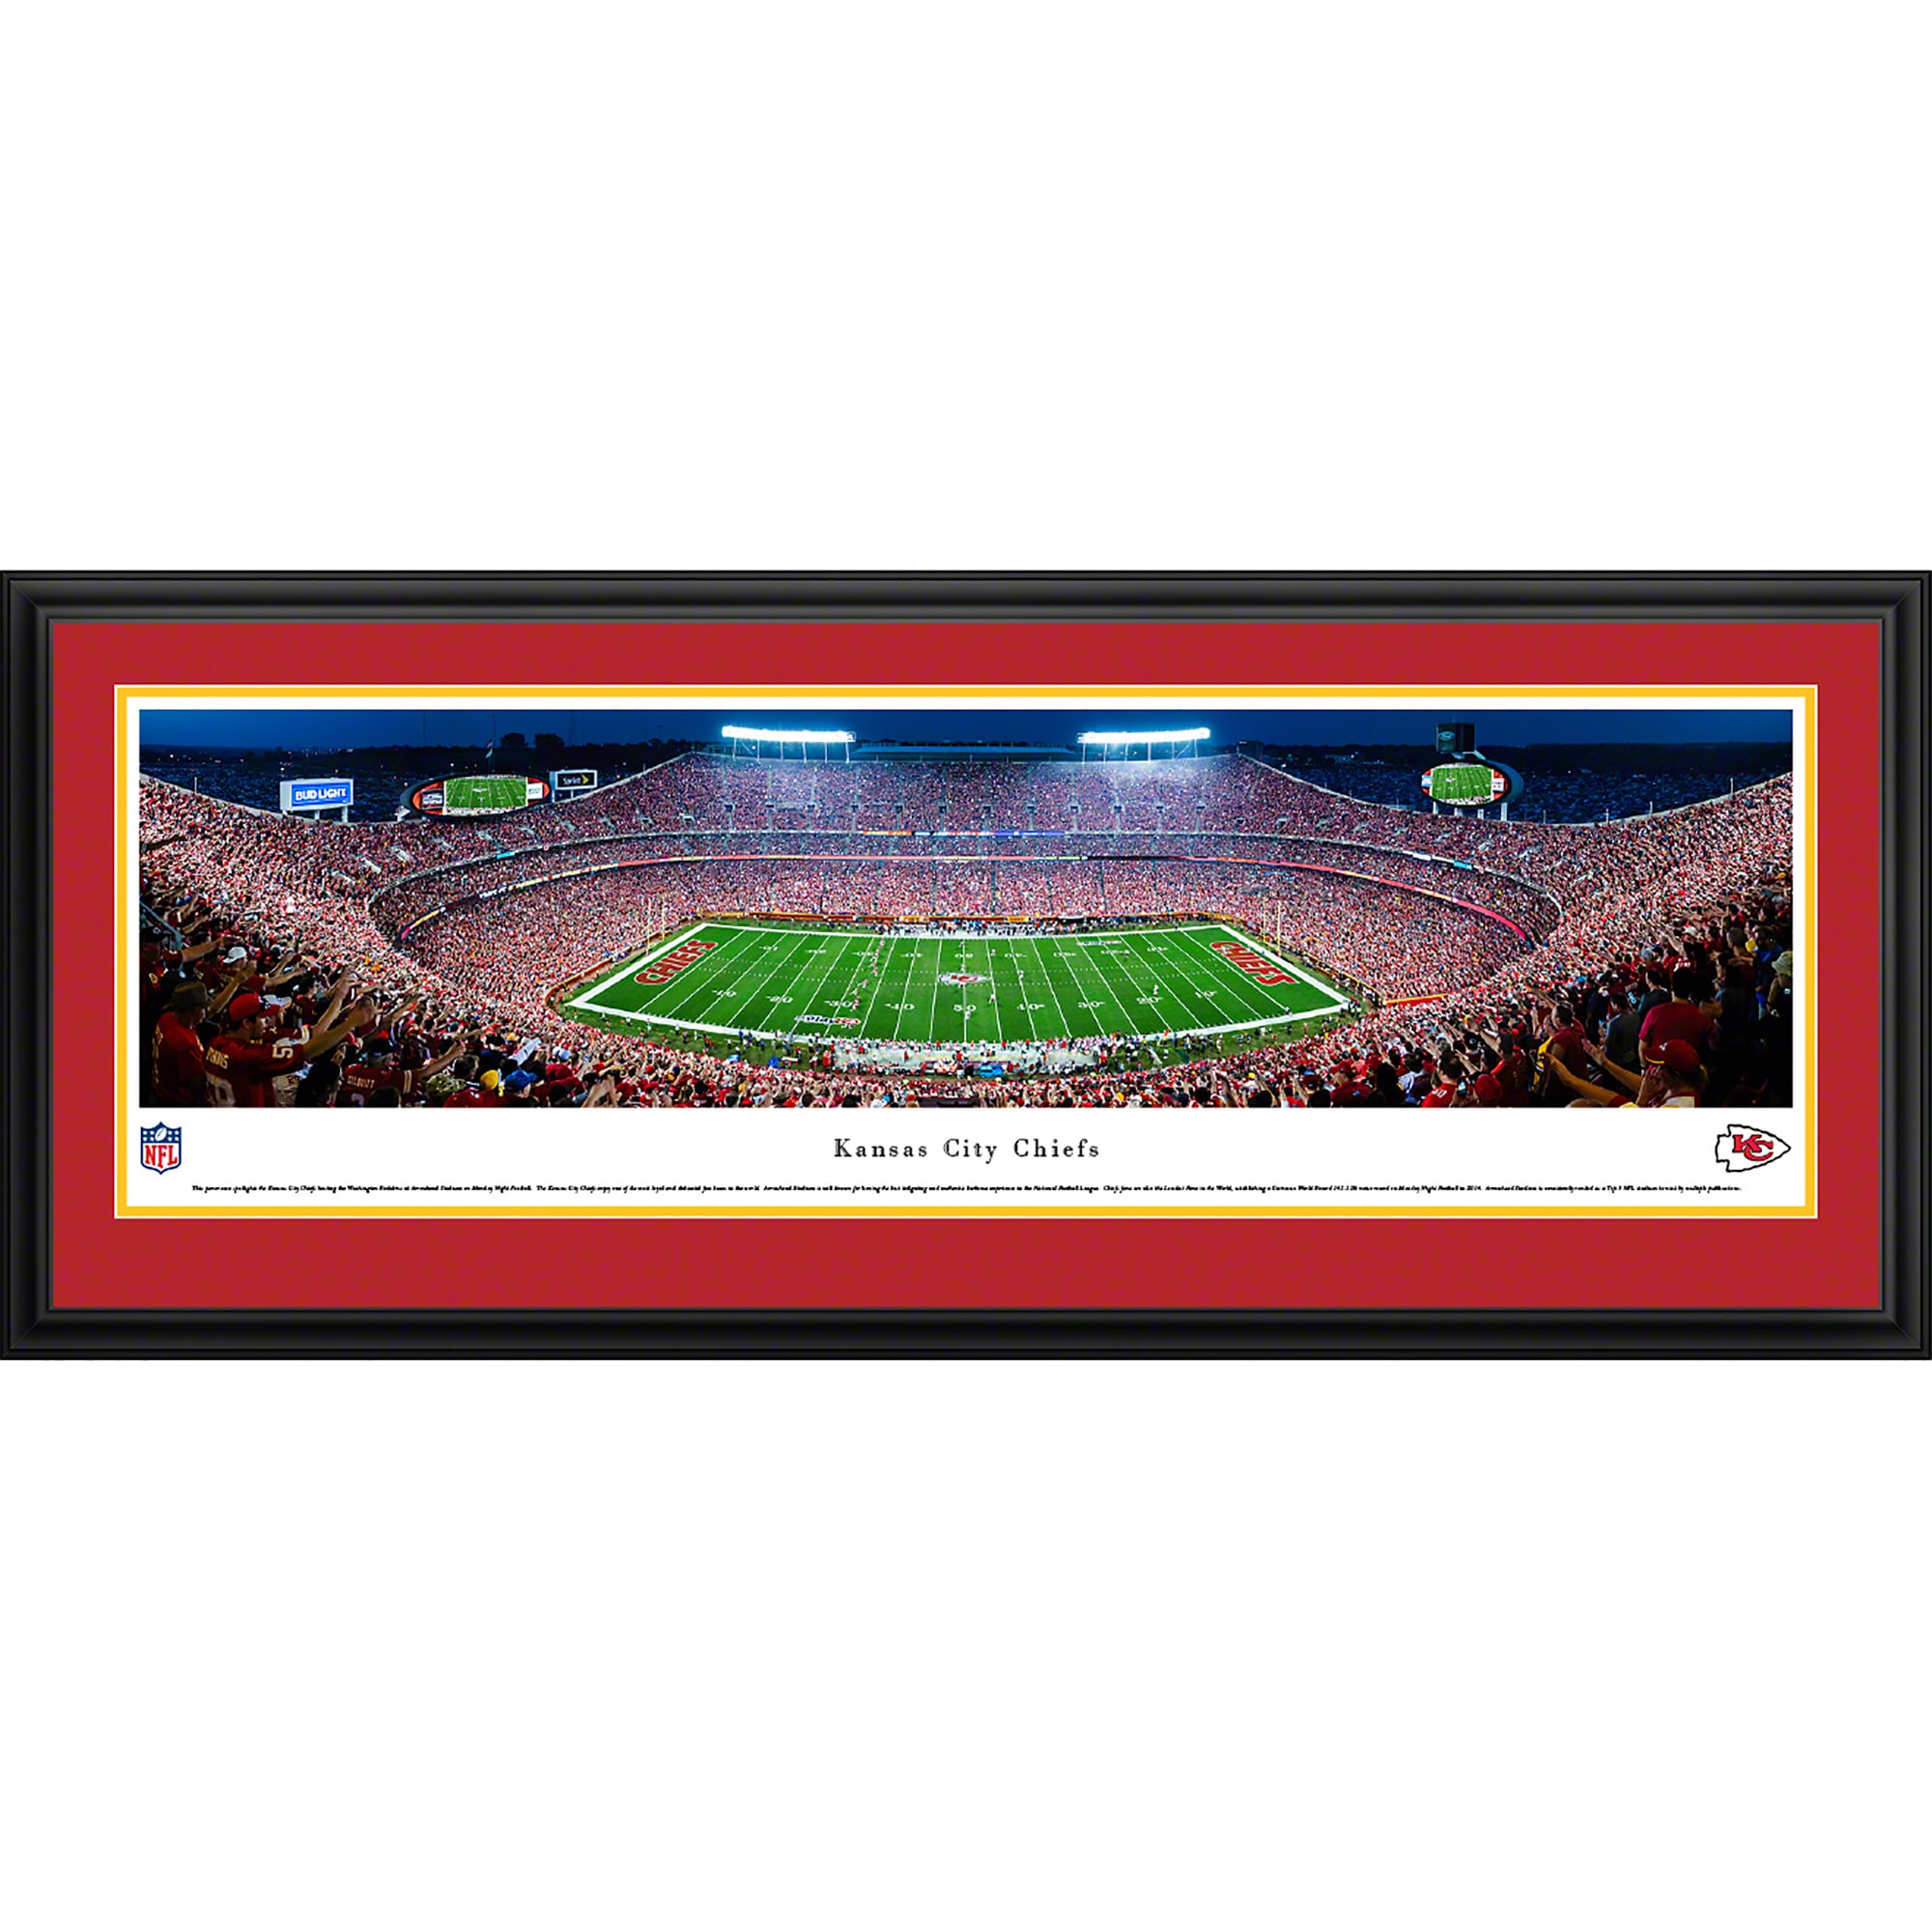 "Kansas City Chiefs 44"" x 18"" 50-Yard Line Deluxe Framed Panoramic"